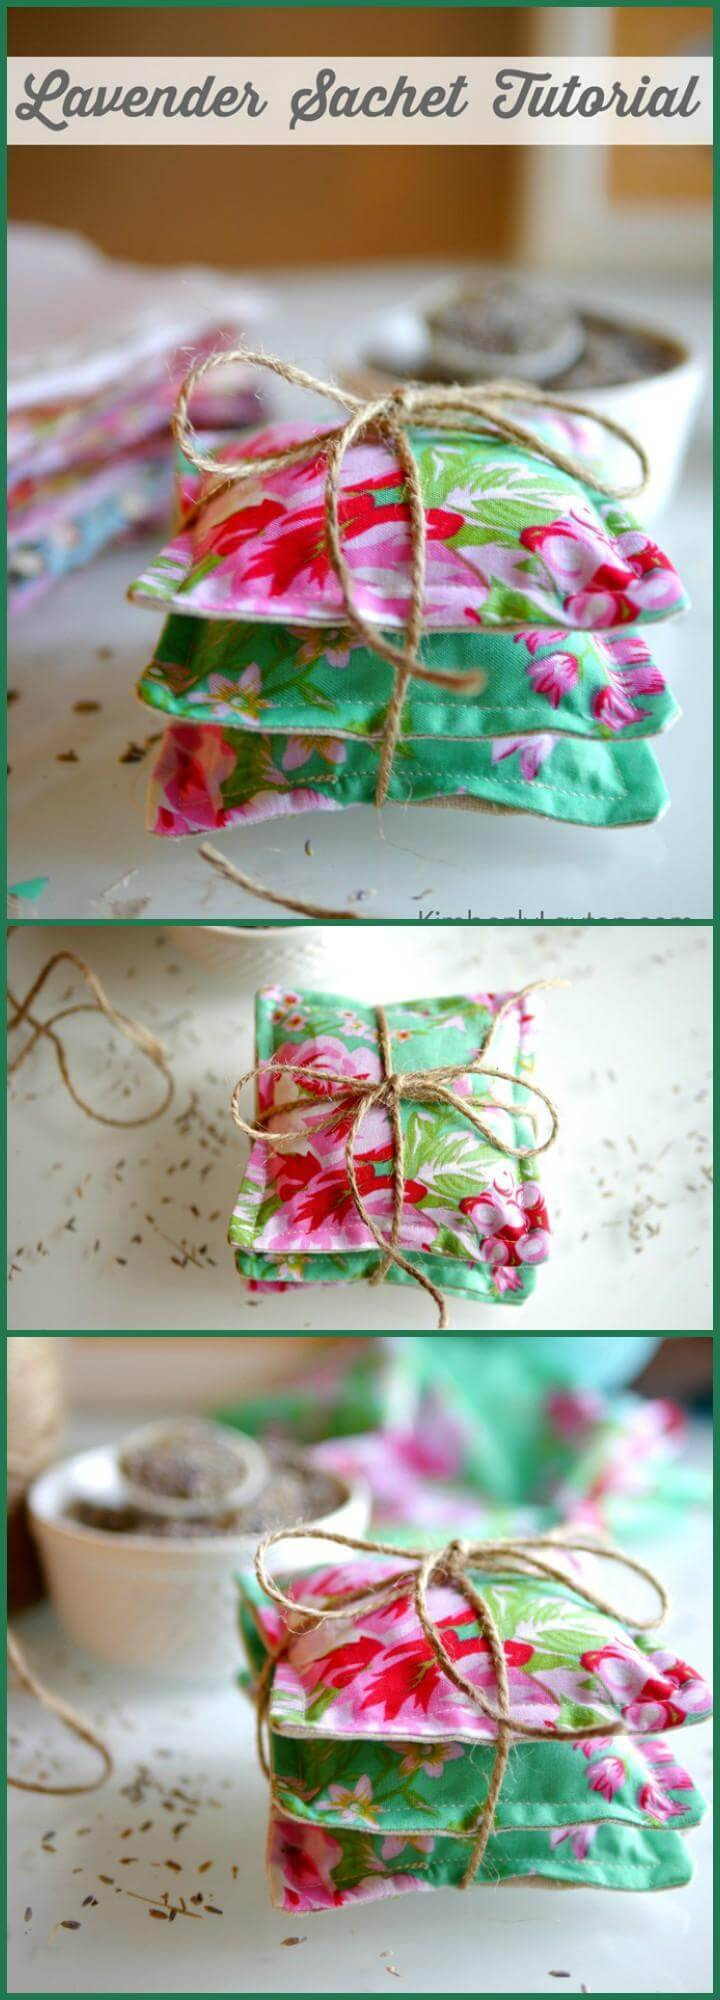 DIY easy lavender sachet tutorial